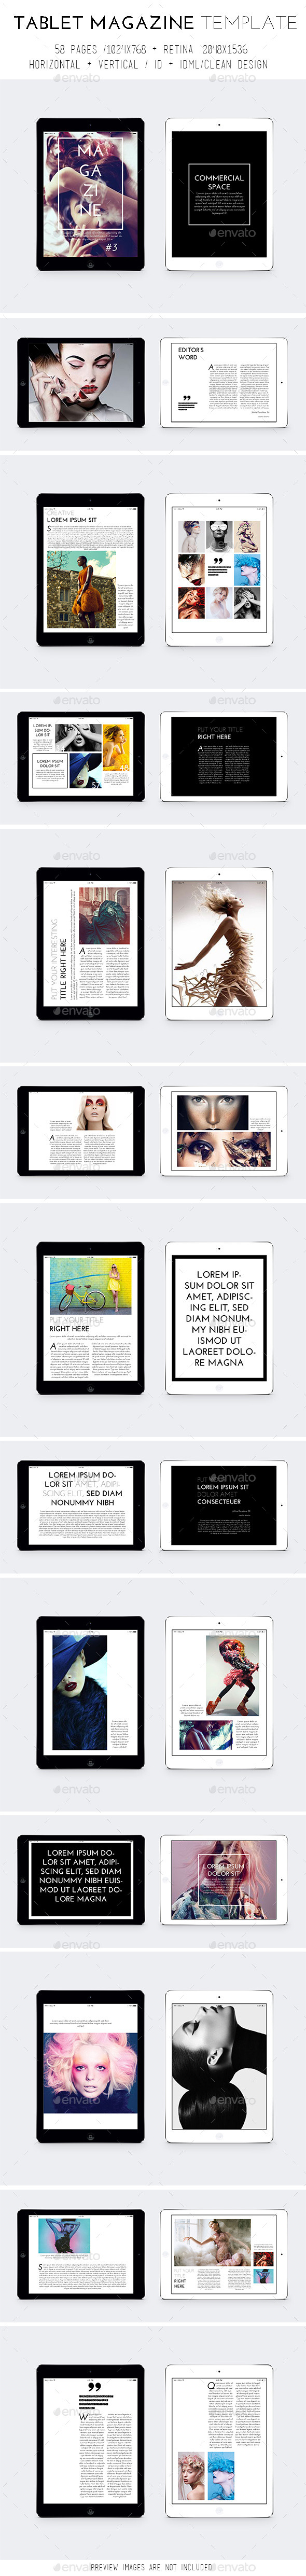 iPad & Tablet Magazine Template - Digital Magazines ePublishing